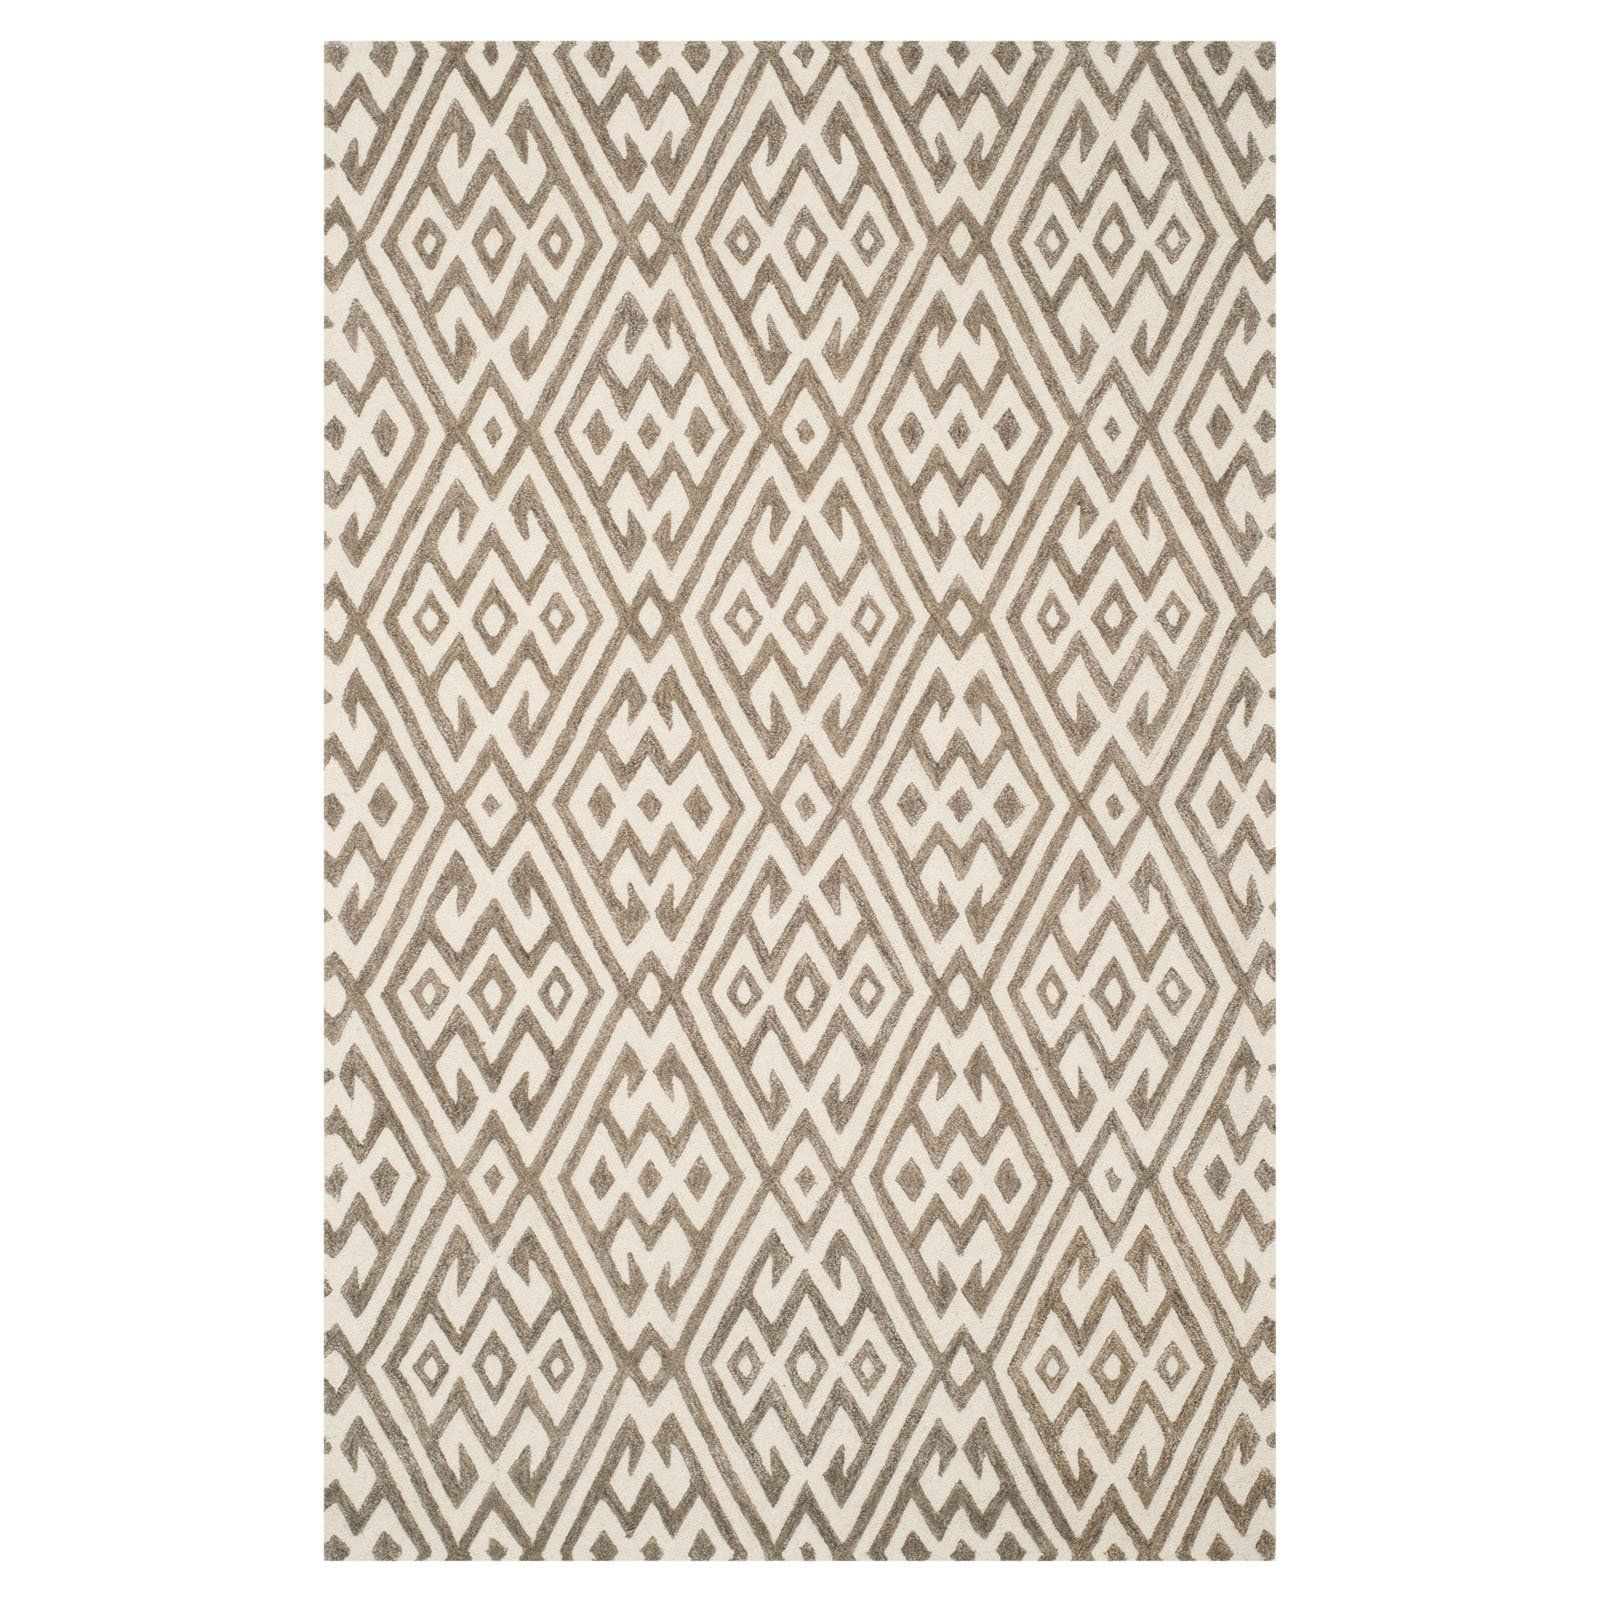 Safavieh Cambridge Cam401a Area Rug Ivory Gray Size 8 X 10